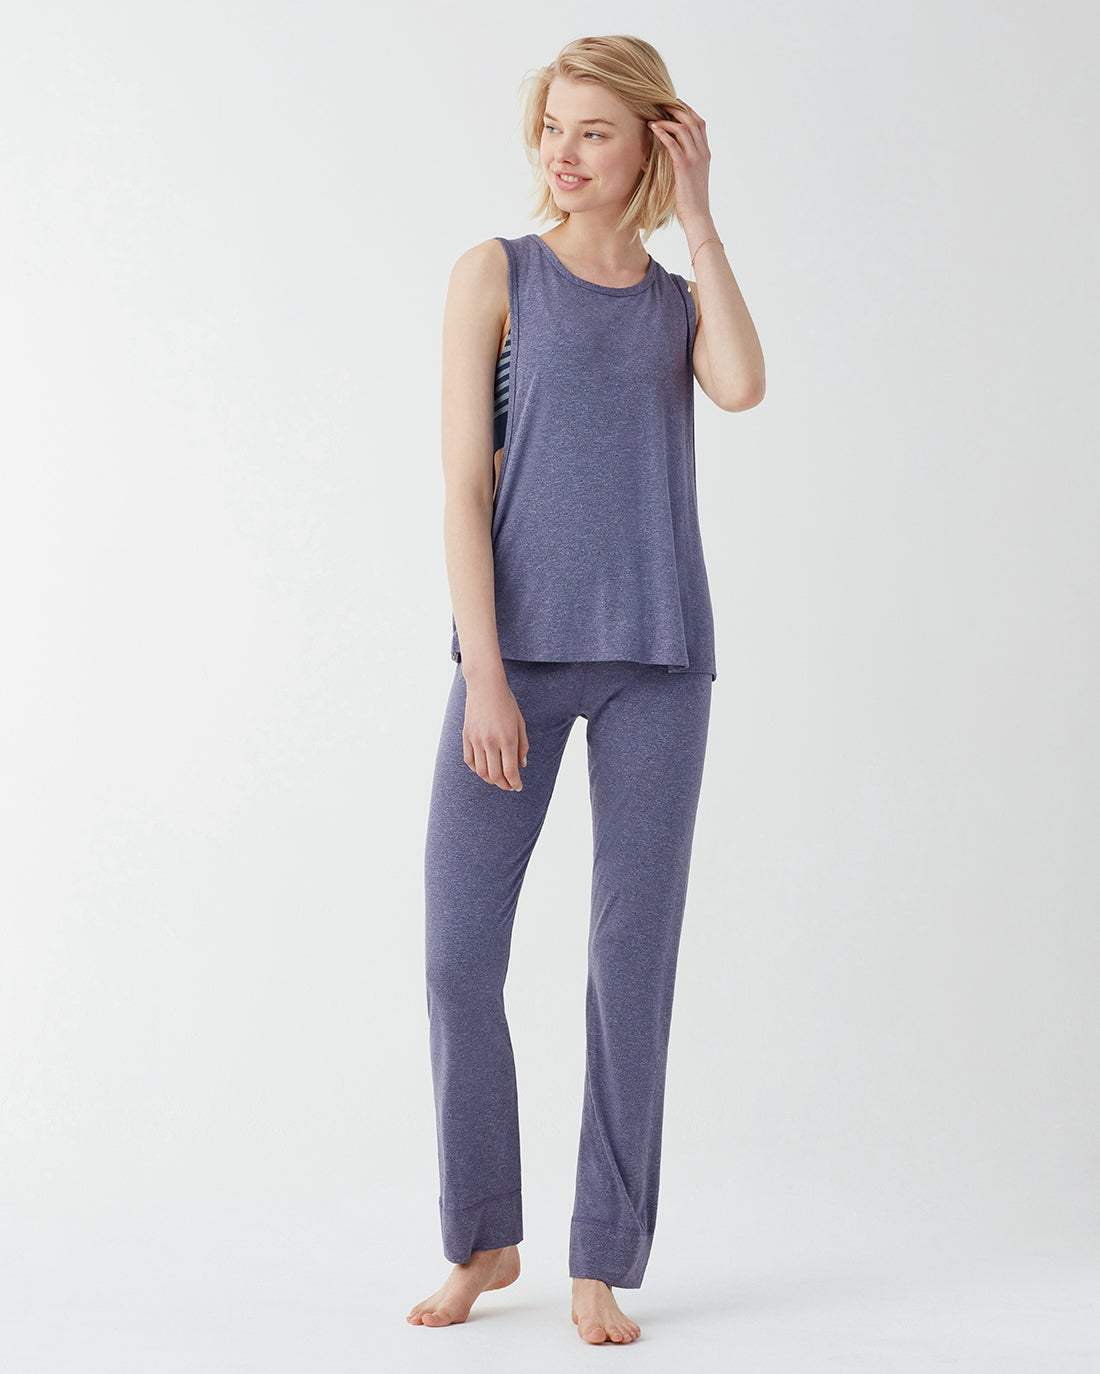 Long yoga pants cut front soft and flexible purple heathered marled knit. Designed with rollover waistband which adds both comfort and style. Wear two ways: as an open leg pant or snapped up jogger Yoga pants Roll over waistband Relaxed fit Moisture wicking fabric